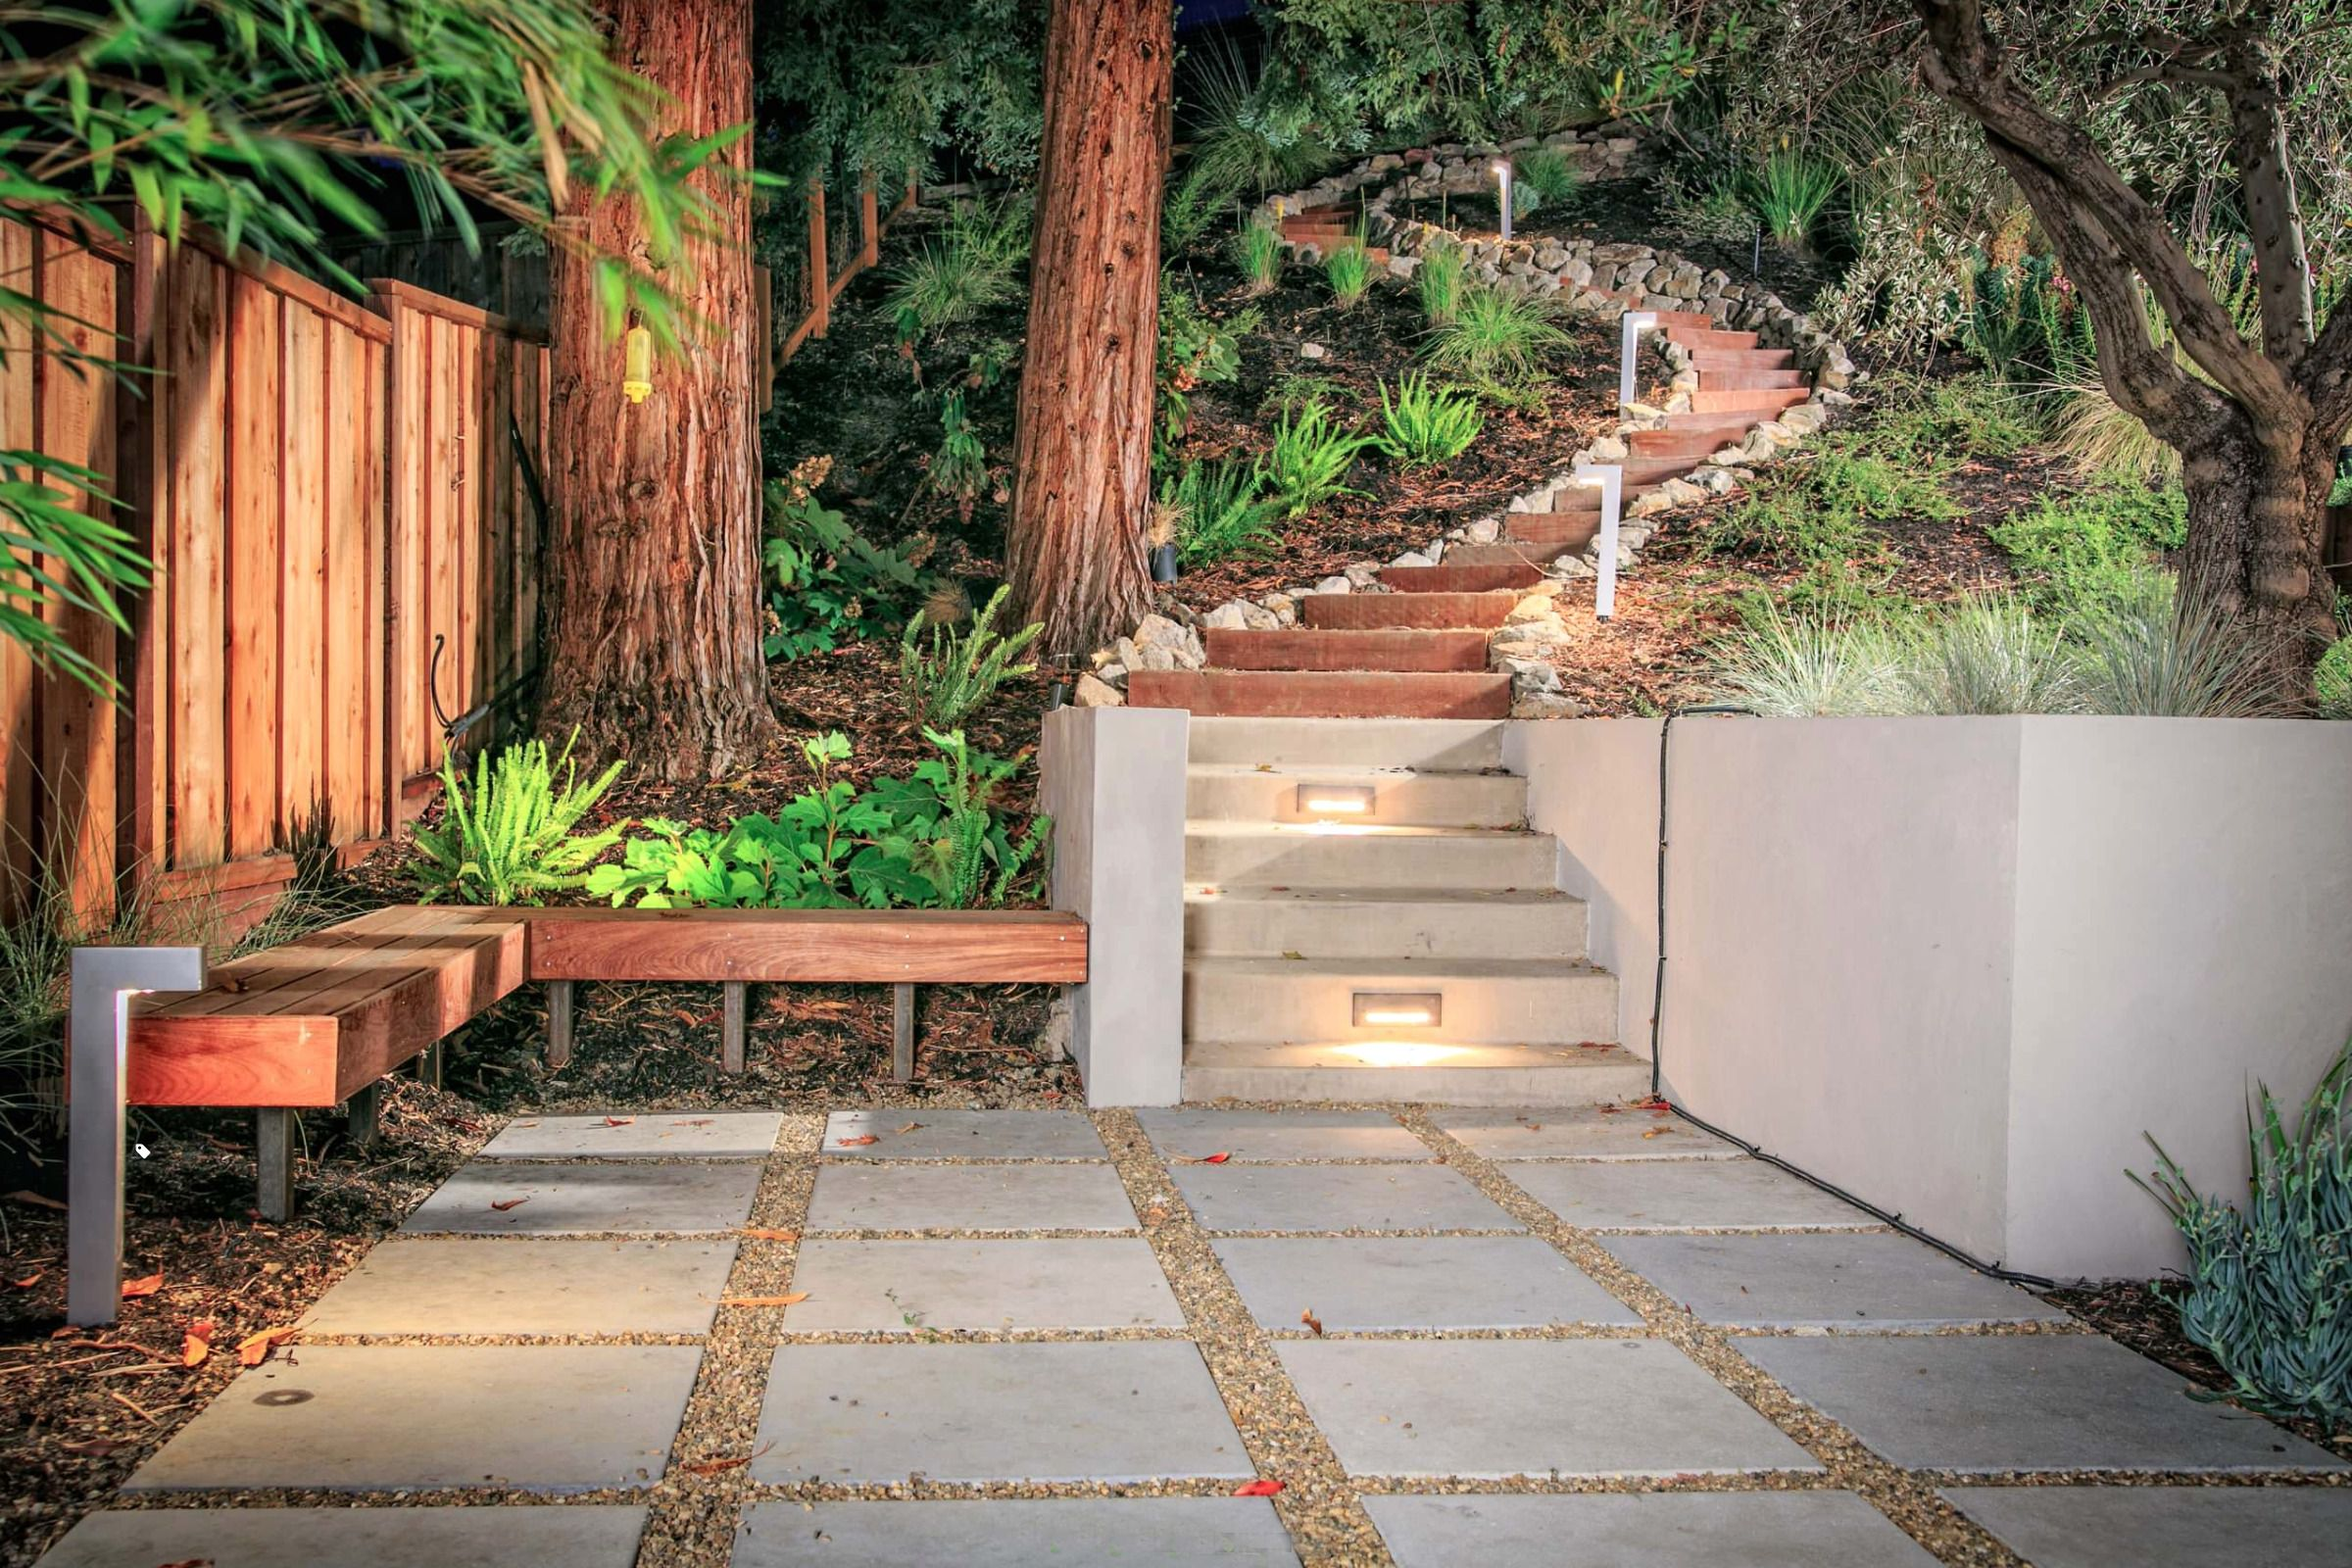 Patio pavers with gravel